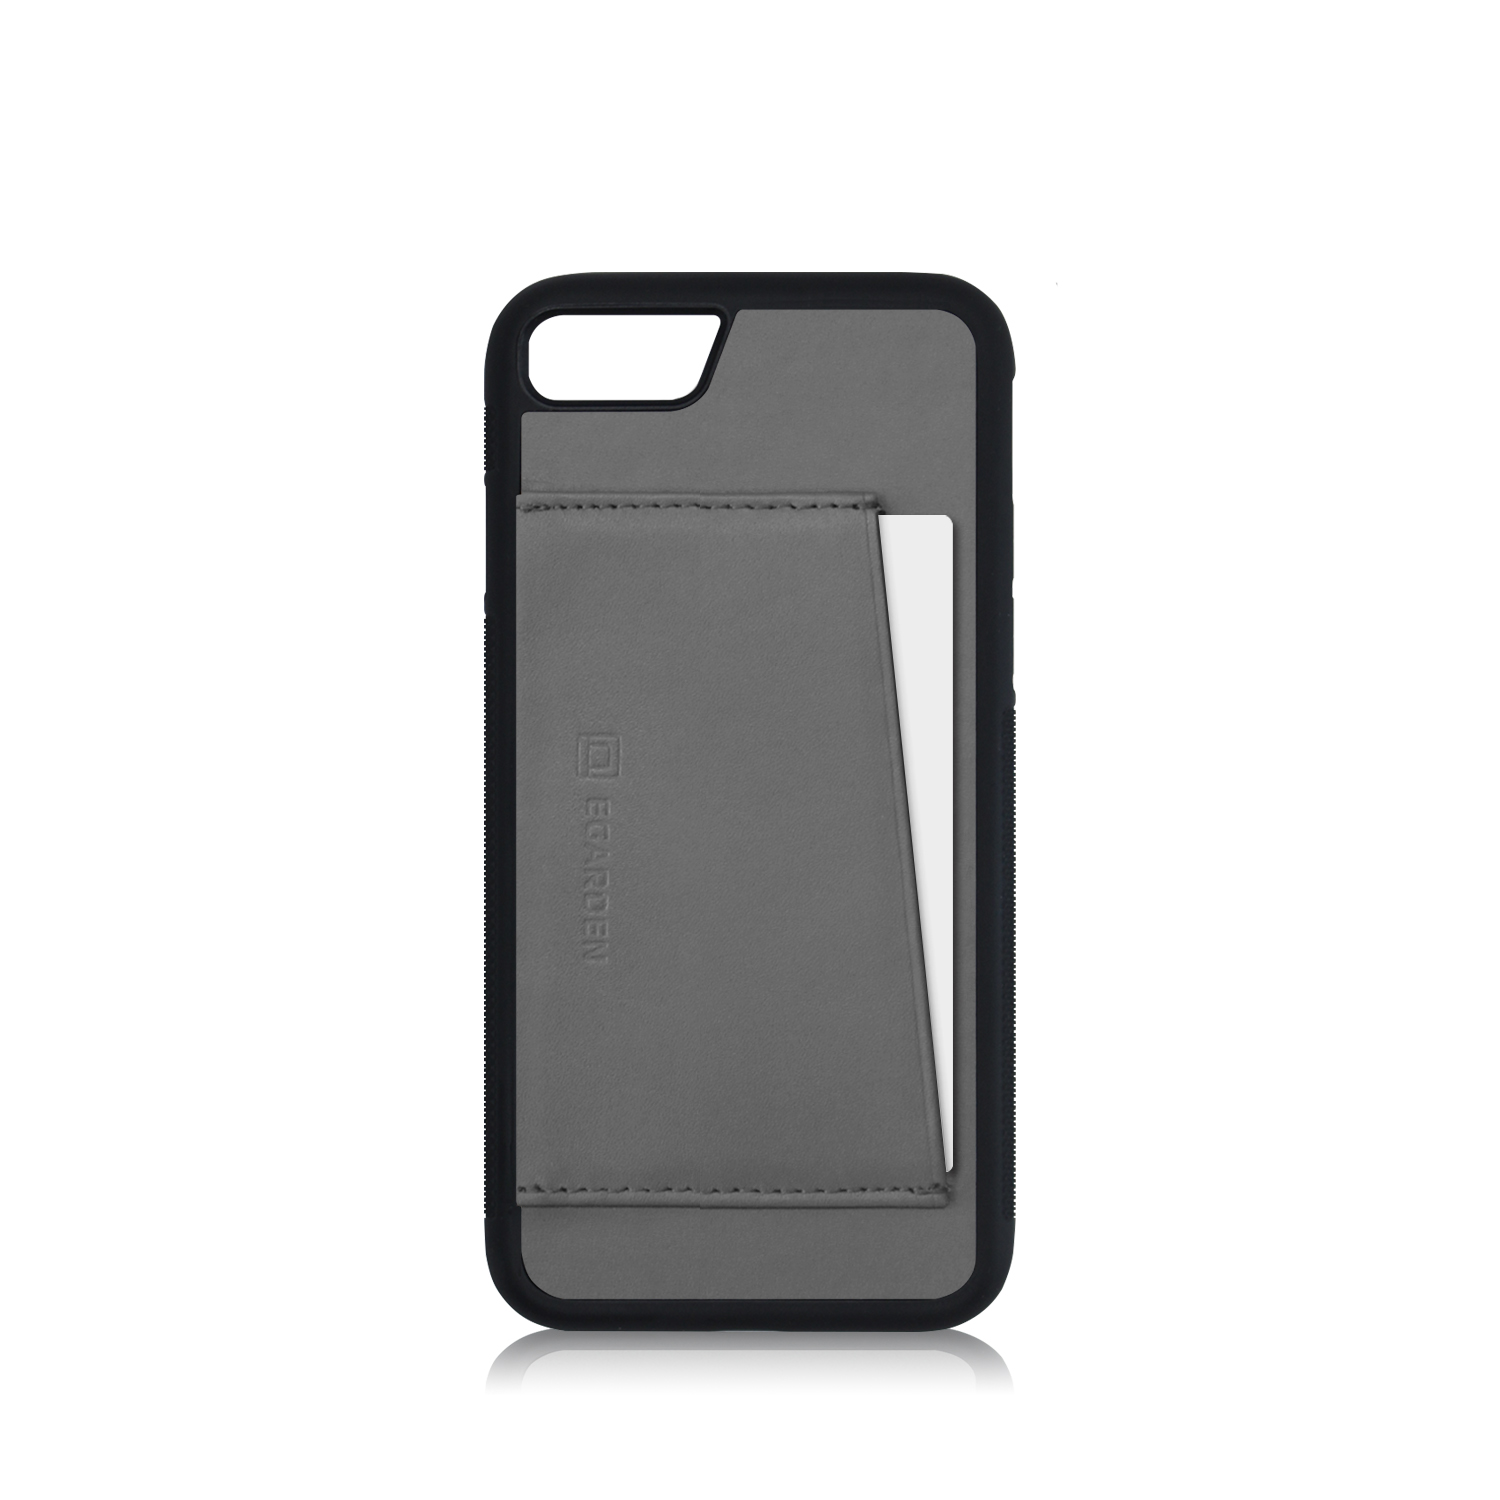 iPhone7 8 7plus 8plus Back Cover Case Grey